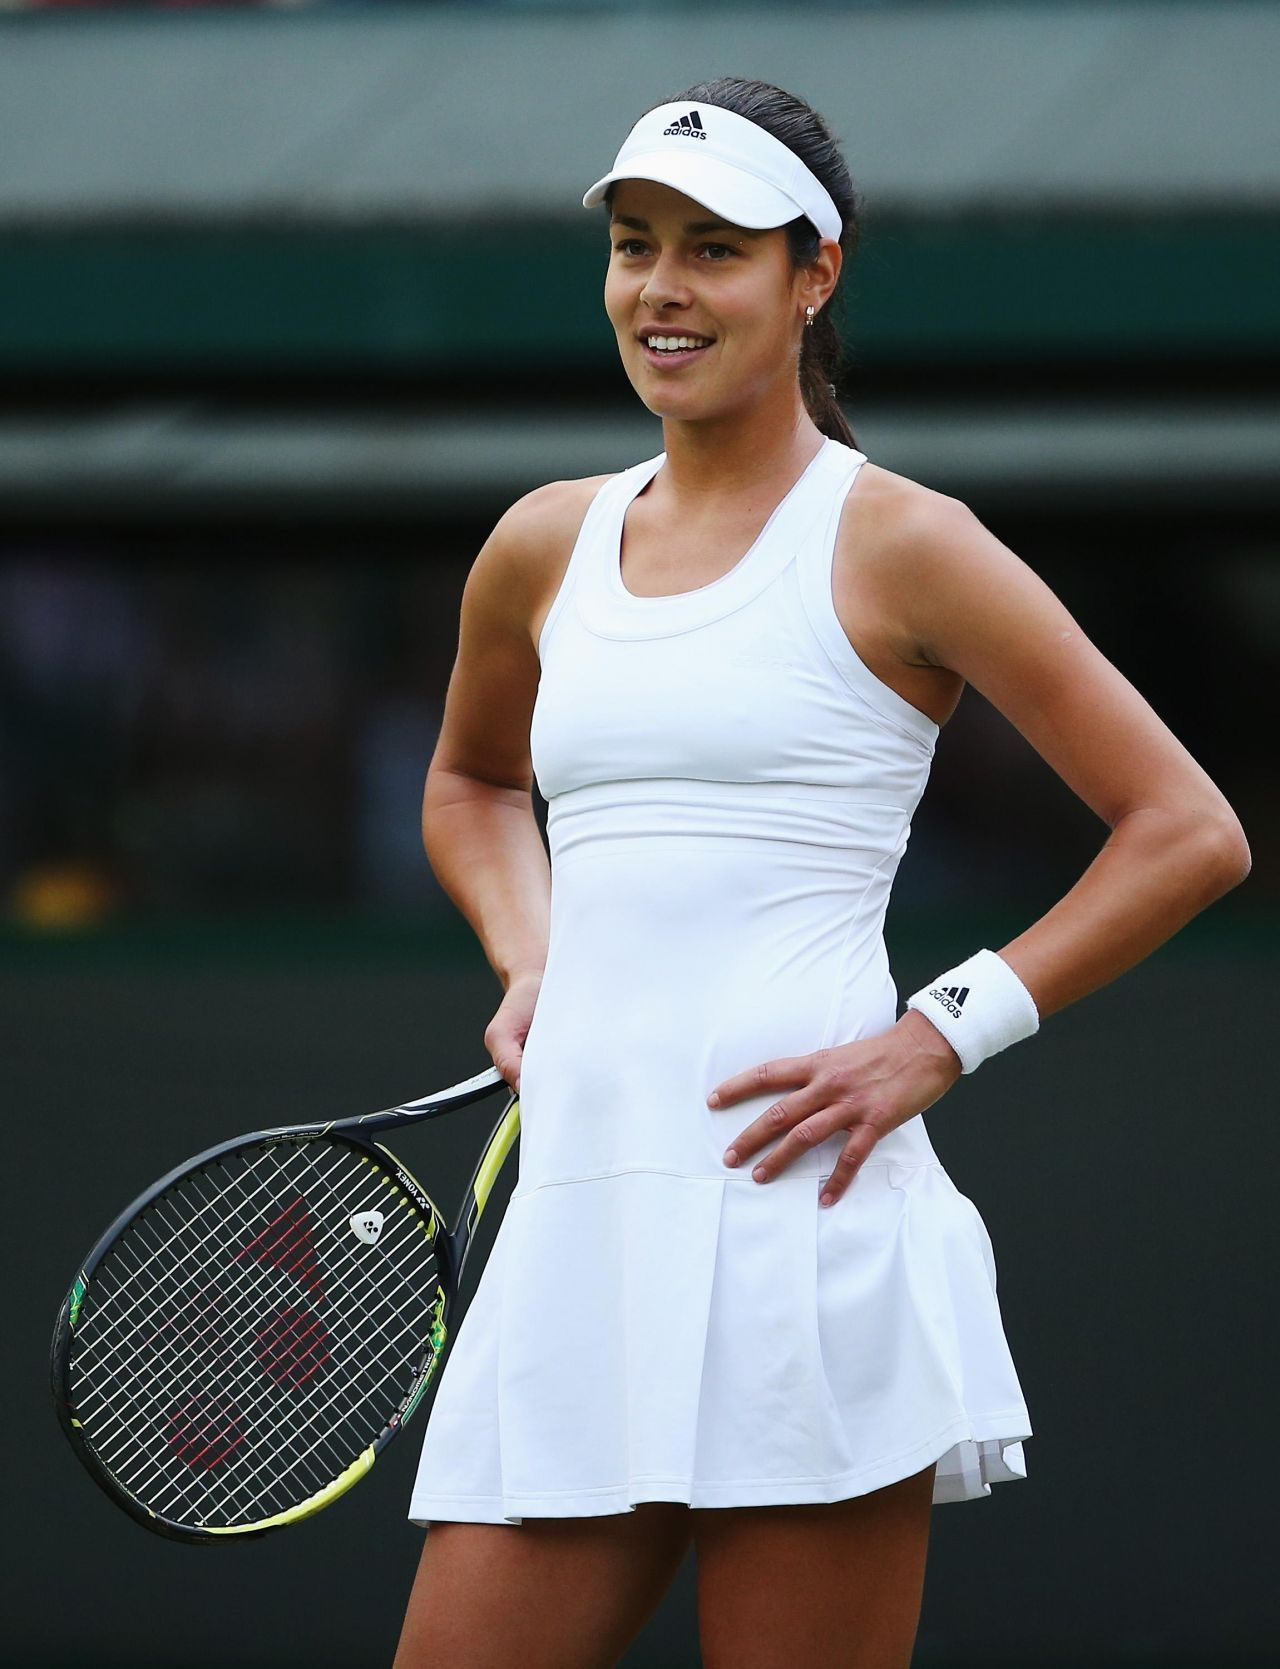 Pin by CAITLIN THORNTON on SPORT Ana ivanovic, Tennis